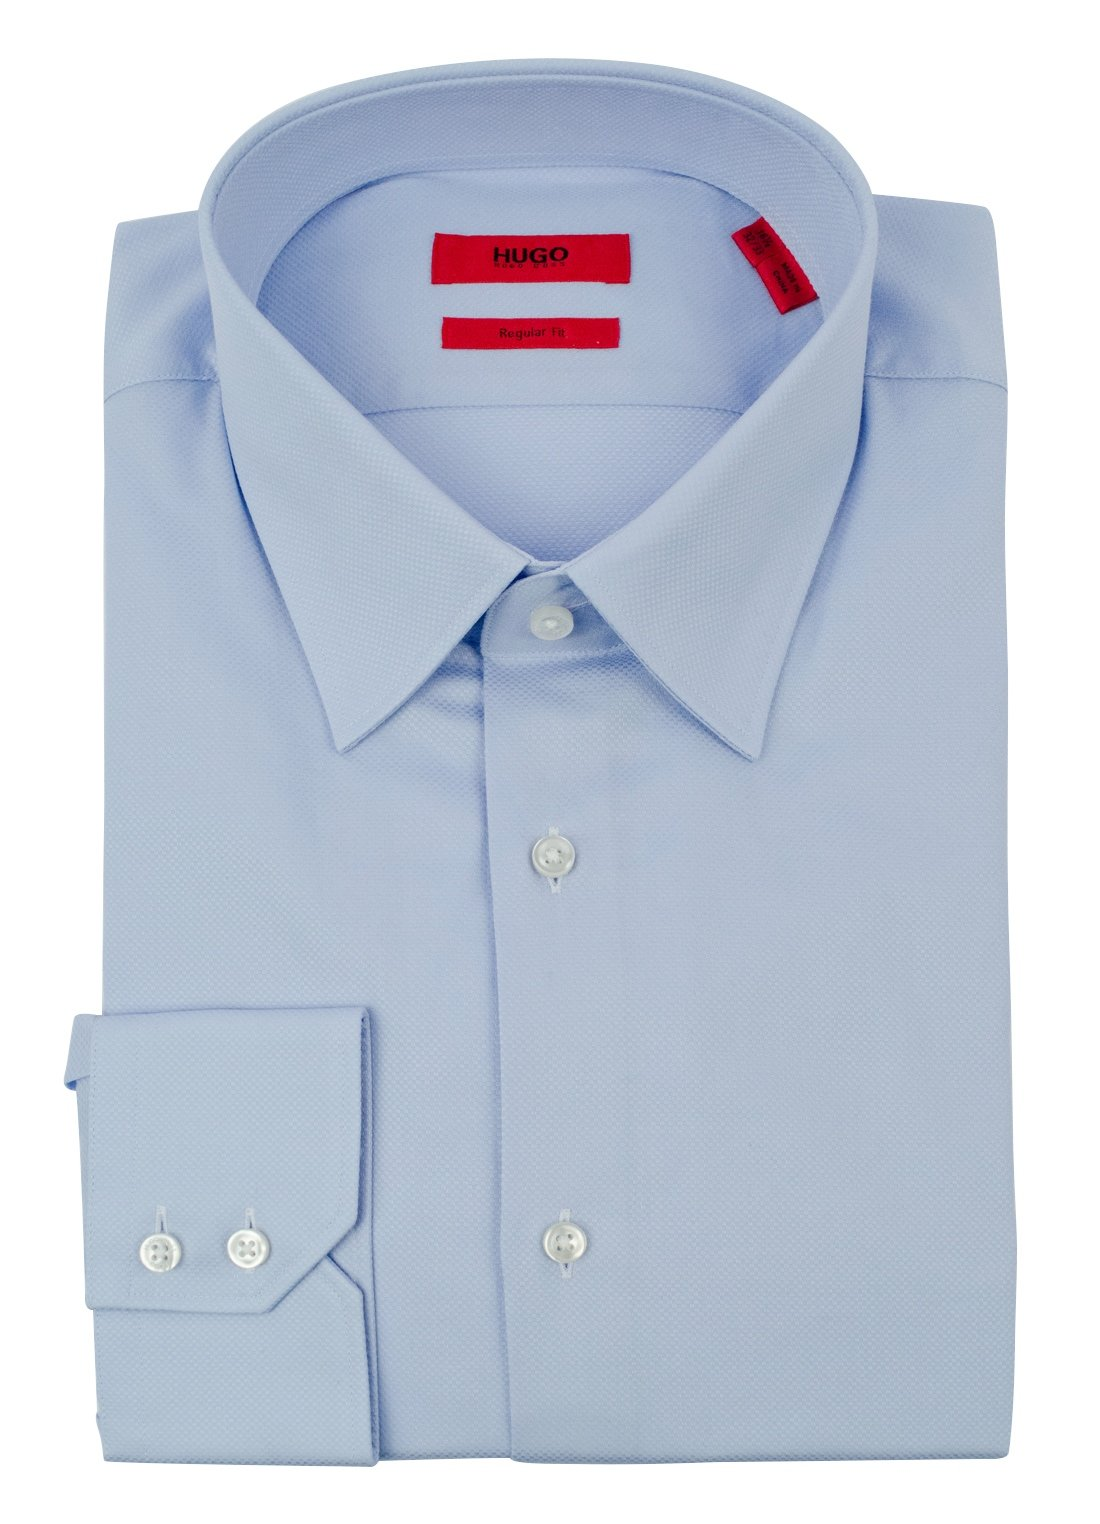 Hugo Boss Men's Red Label Regular Fit C-Menzo Broadcloth Dress Shirt-B-16.5-32/33